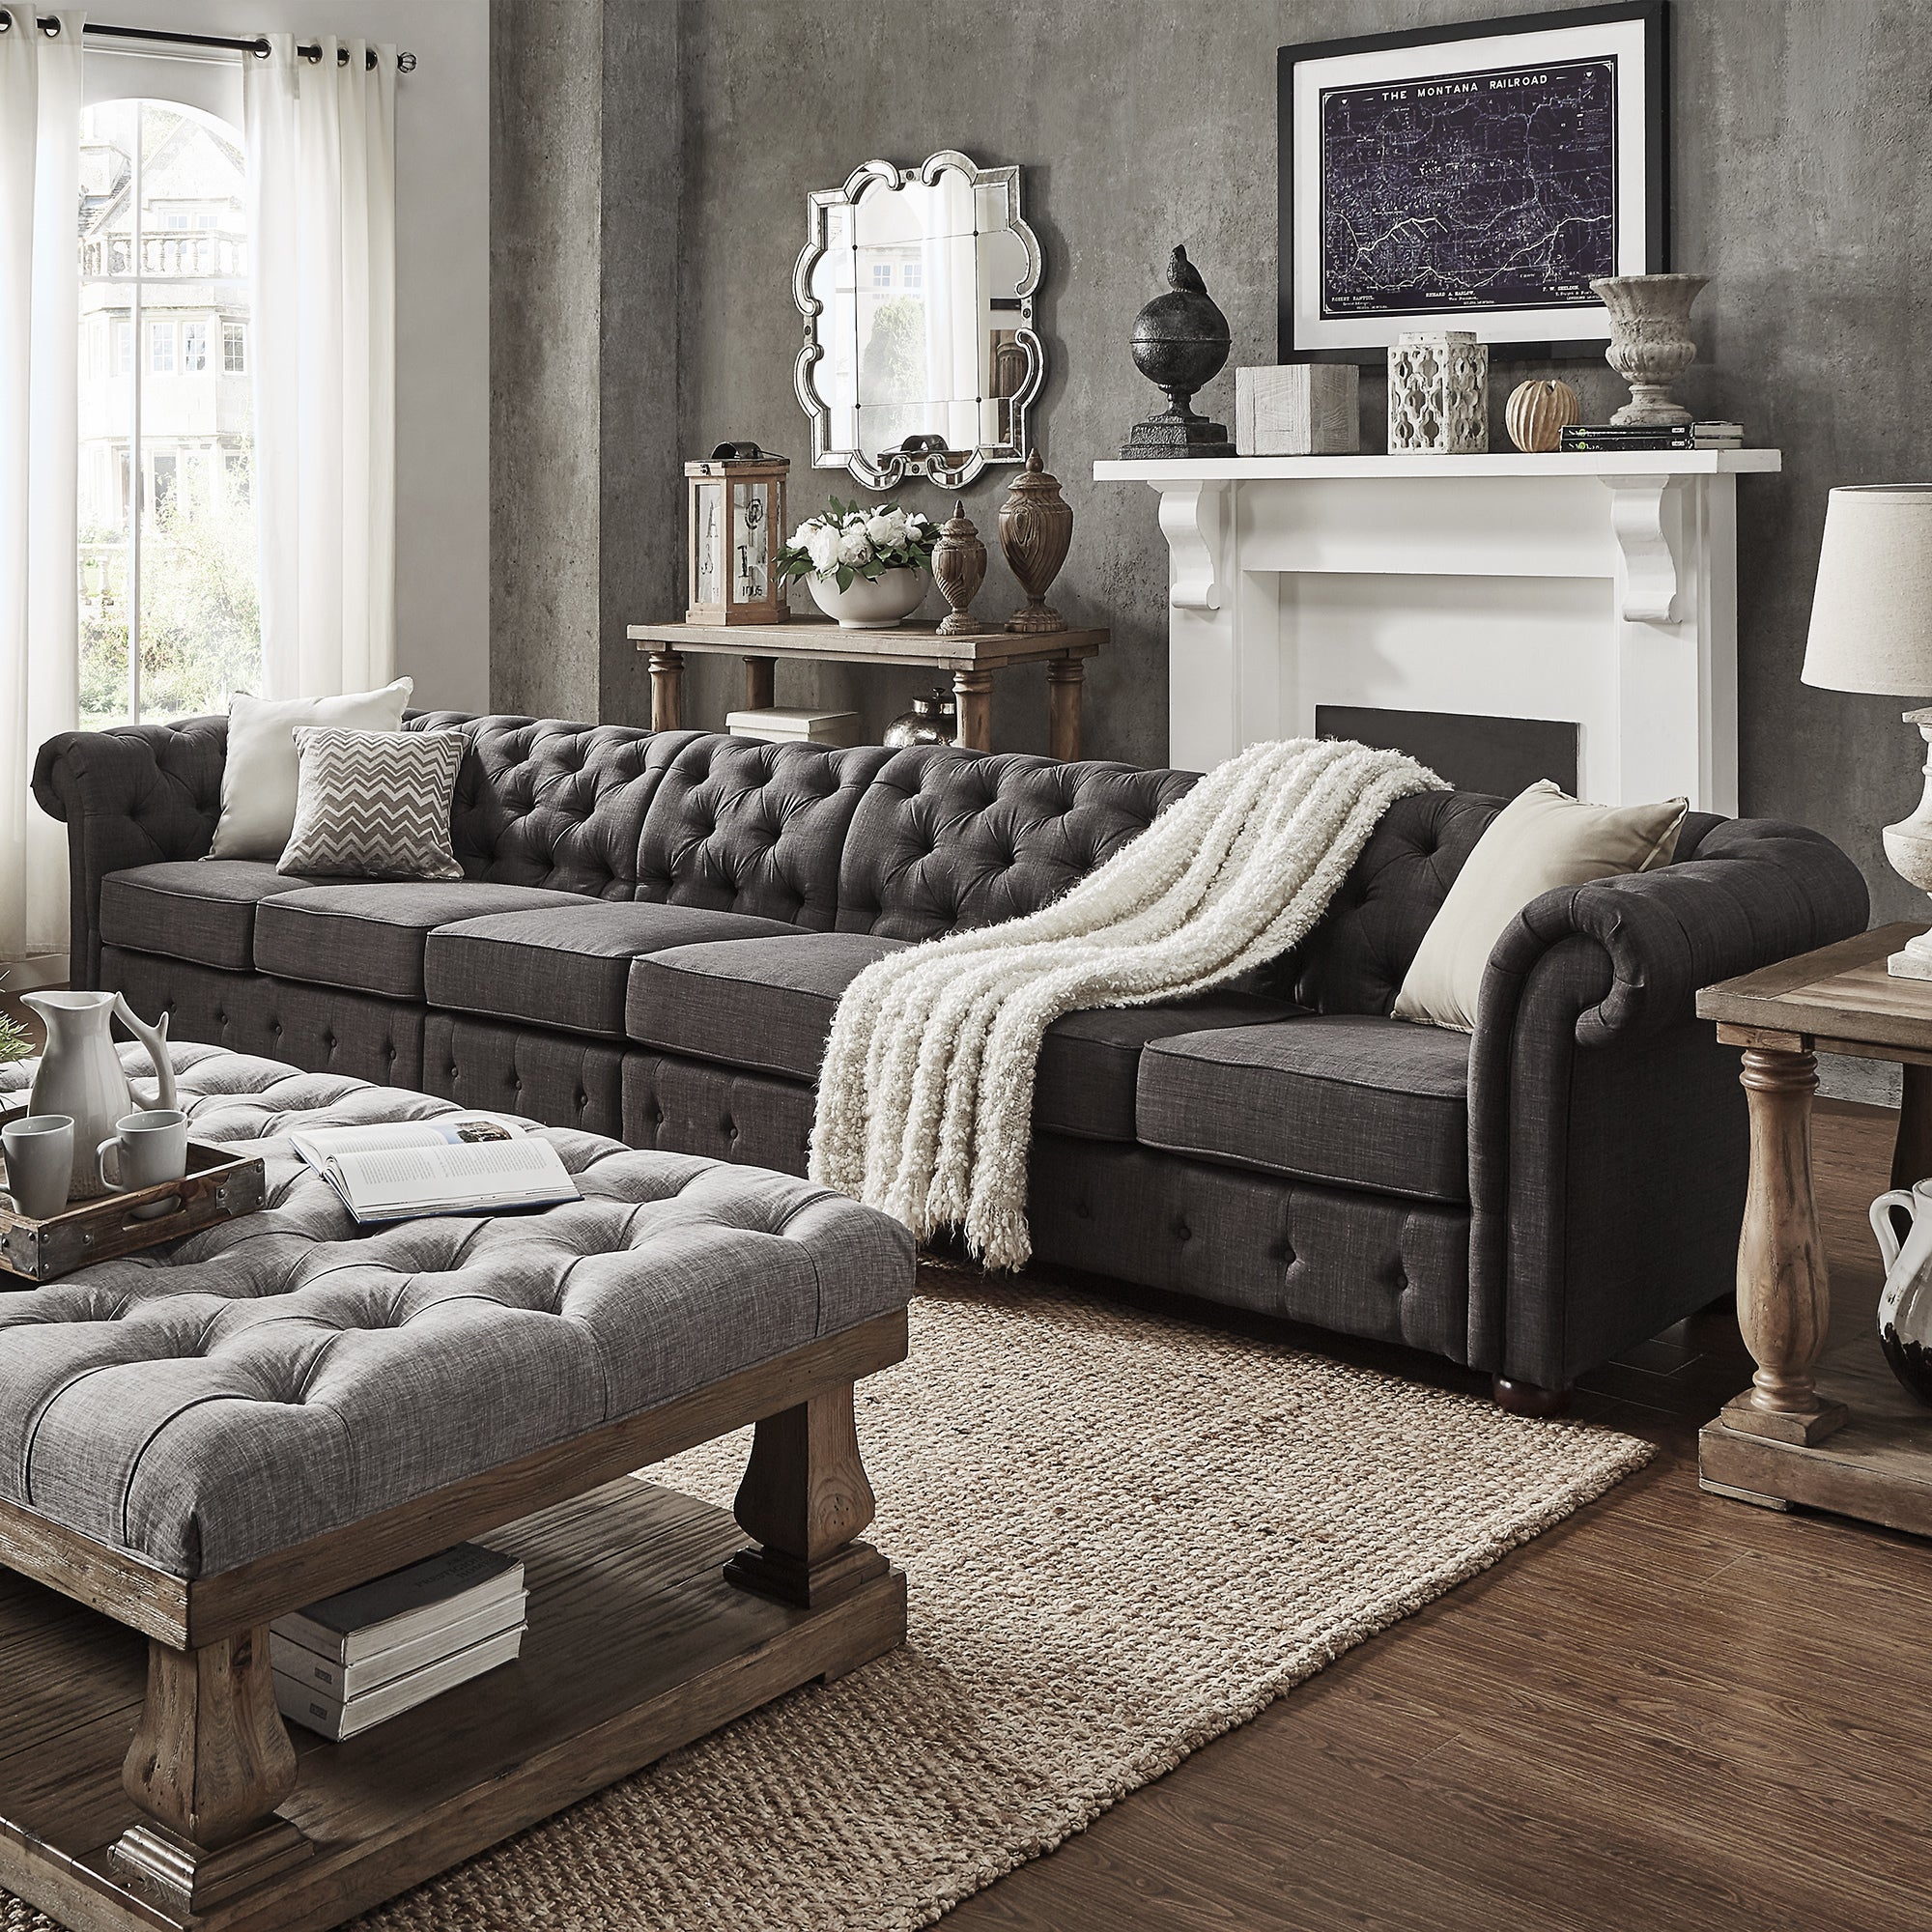 Shop Knightsbridge Dark Grey Extra Long Tufted Chesterfield Sofa By